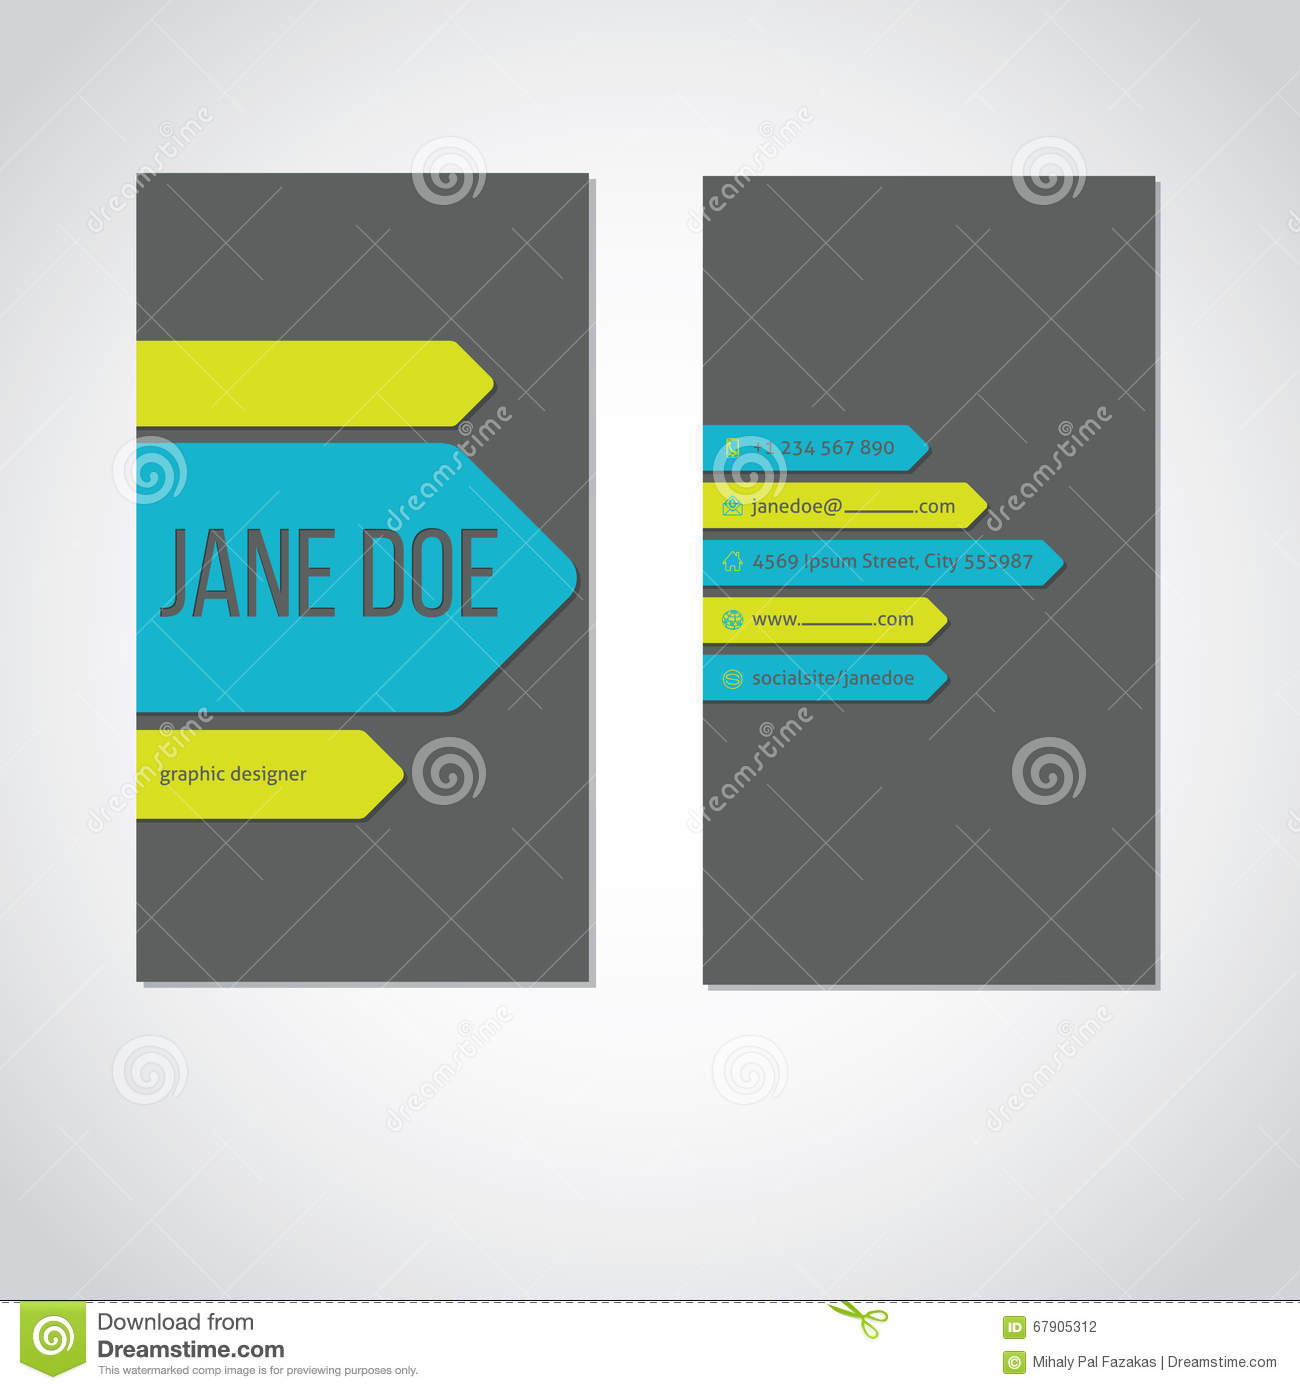 Cool portrait business card with color arrows stock vector cool portrait business card with color arrows colourmoves